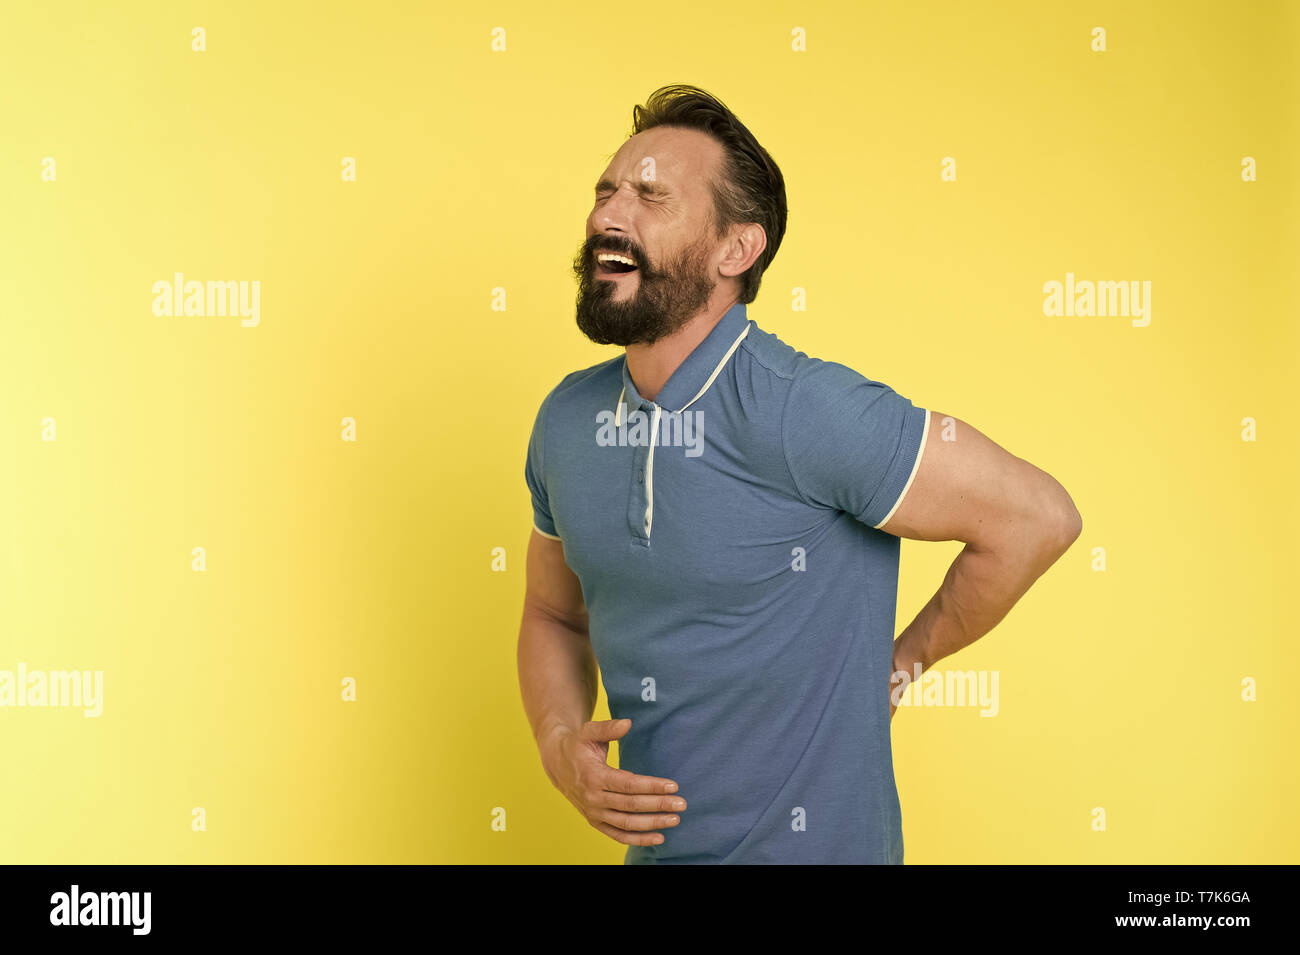 Pain concept. Senior man feel pain in back. Bearded man suffer from pain. I know real pain, copy space. - Stock Image